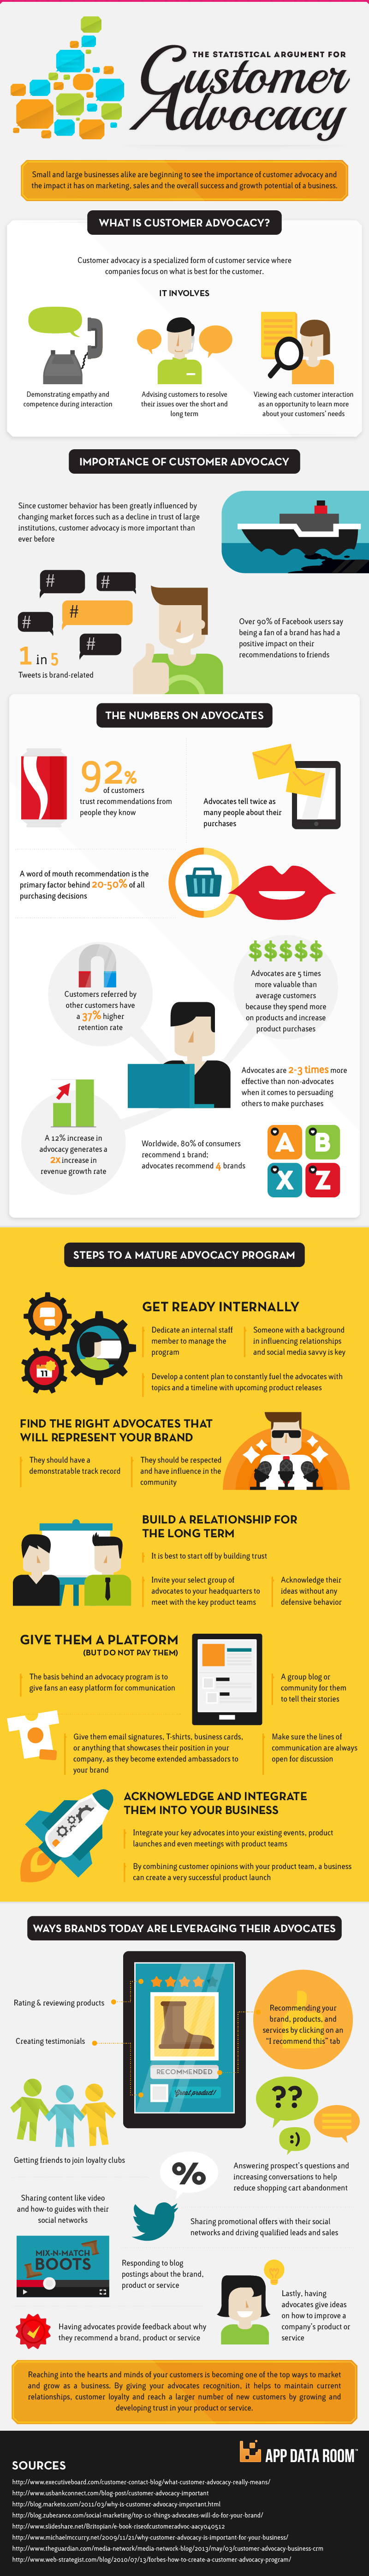 Infographic: The Statistical Argument For Customer Advocacy